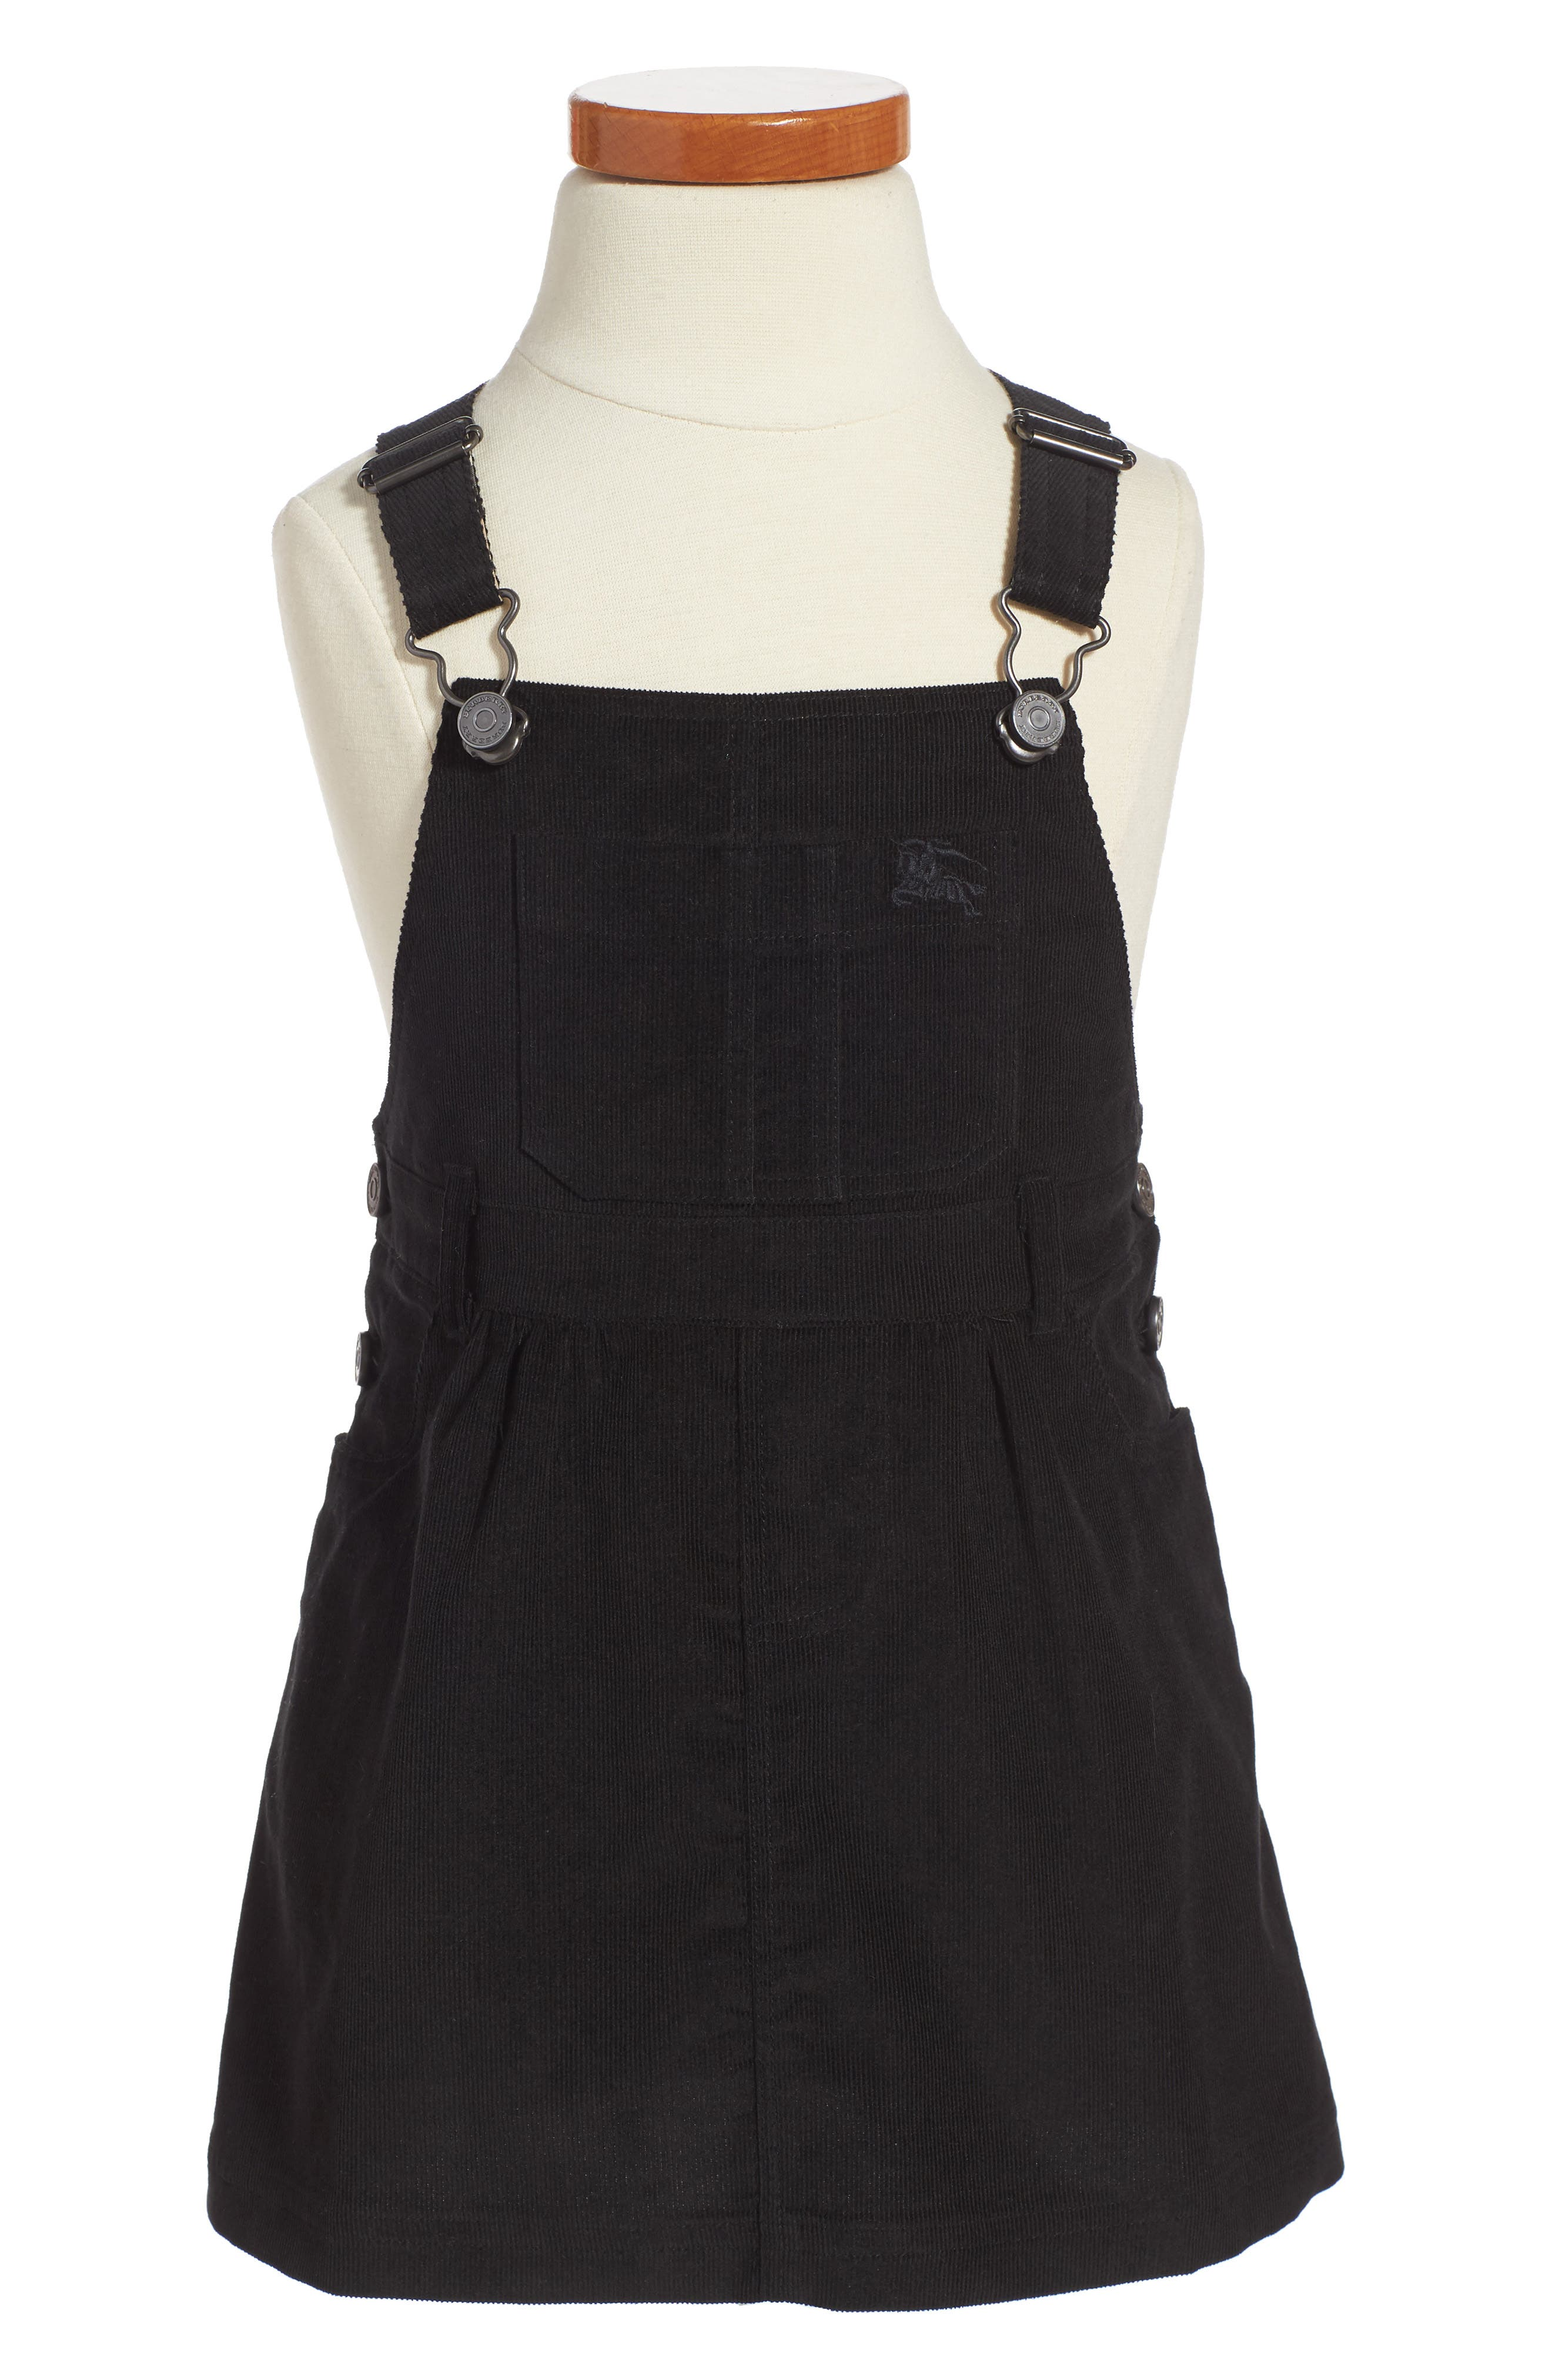 Wilma Overalls Dress,                             Main thumbnail 1, color,                             001